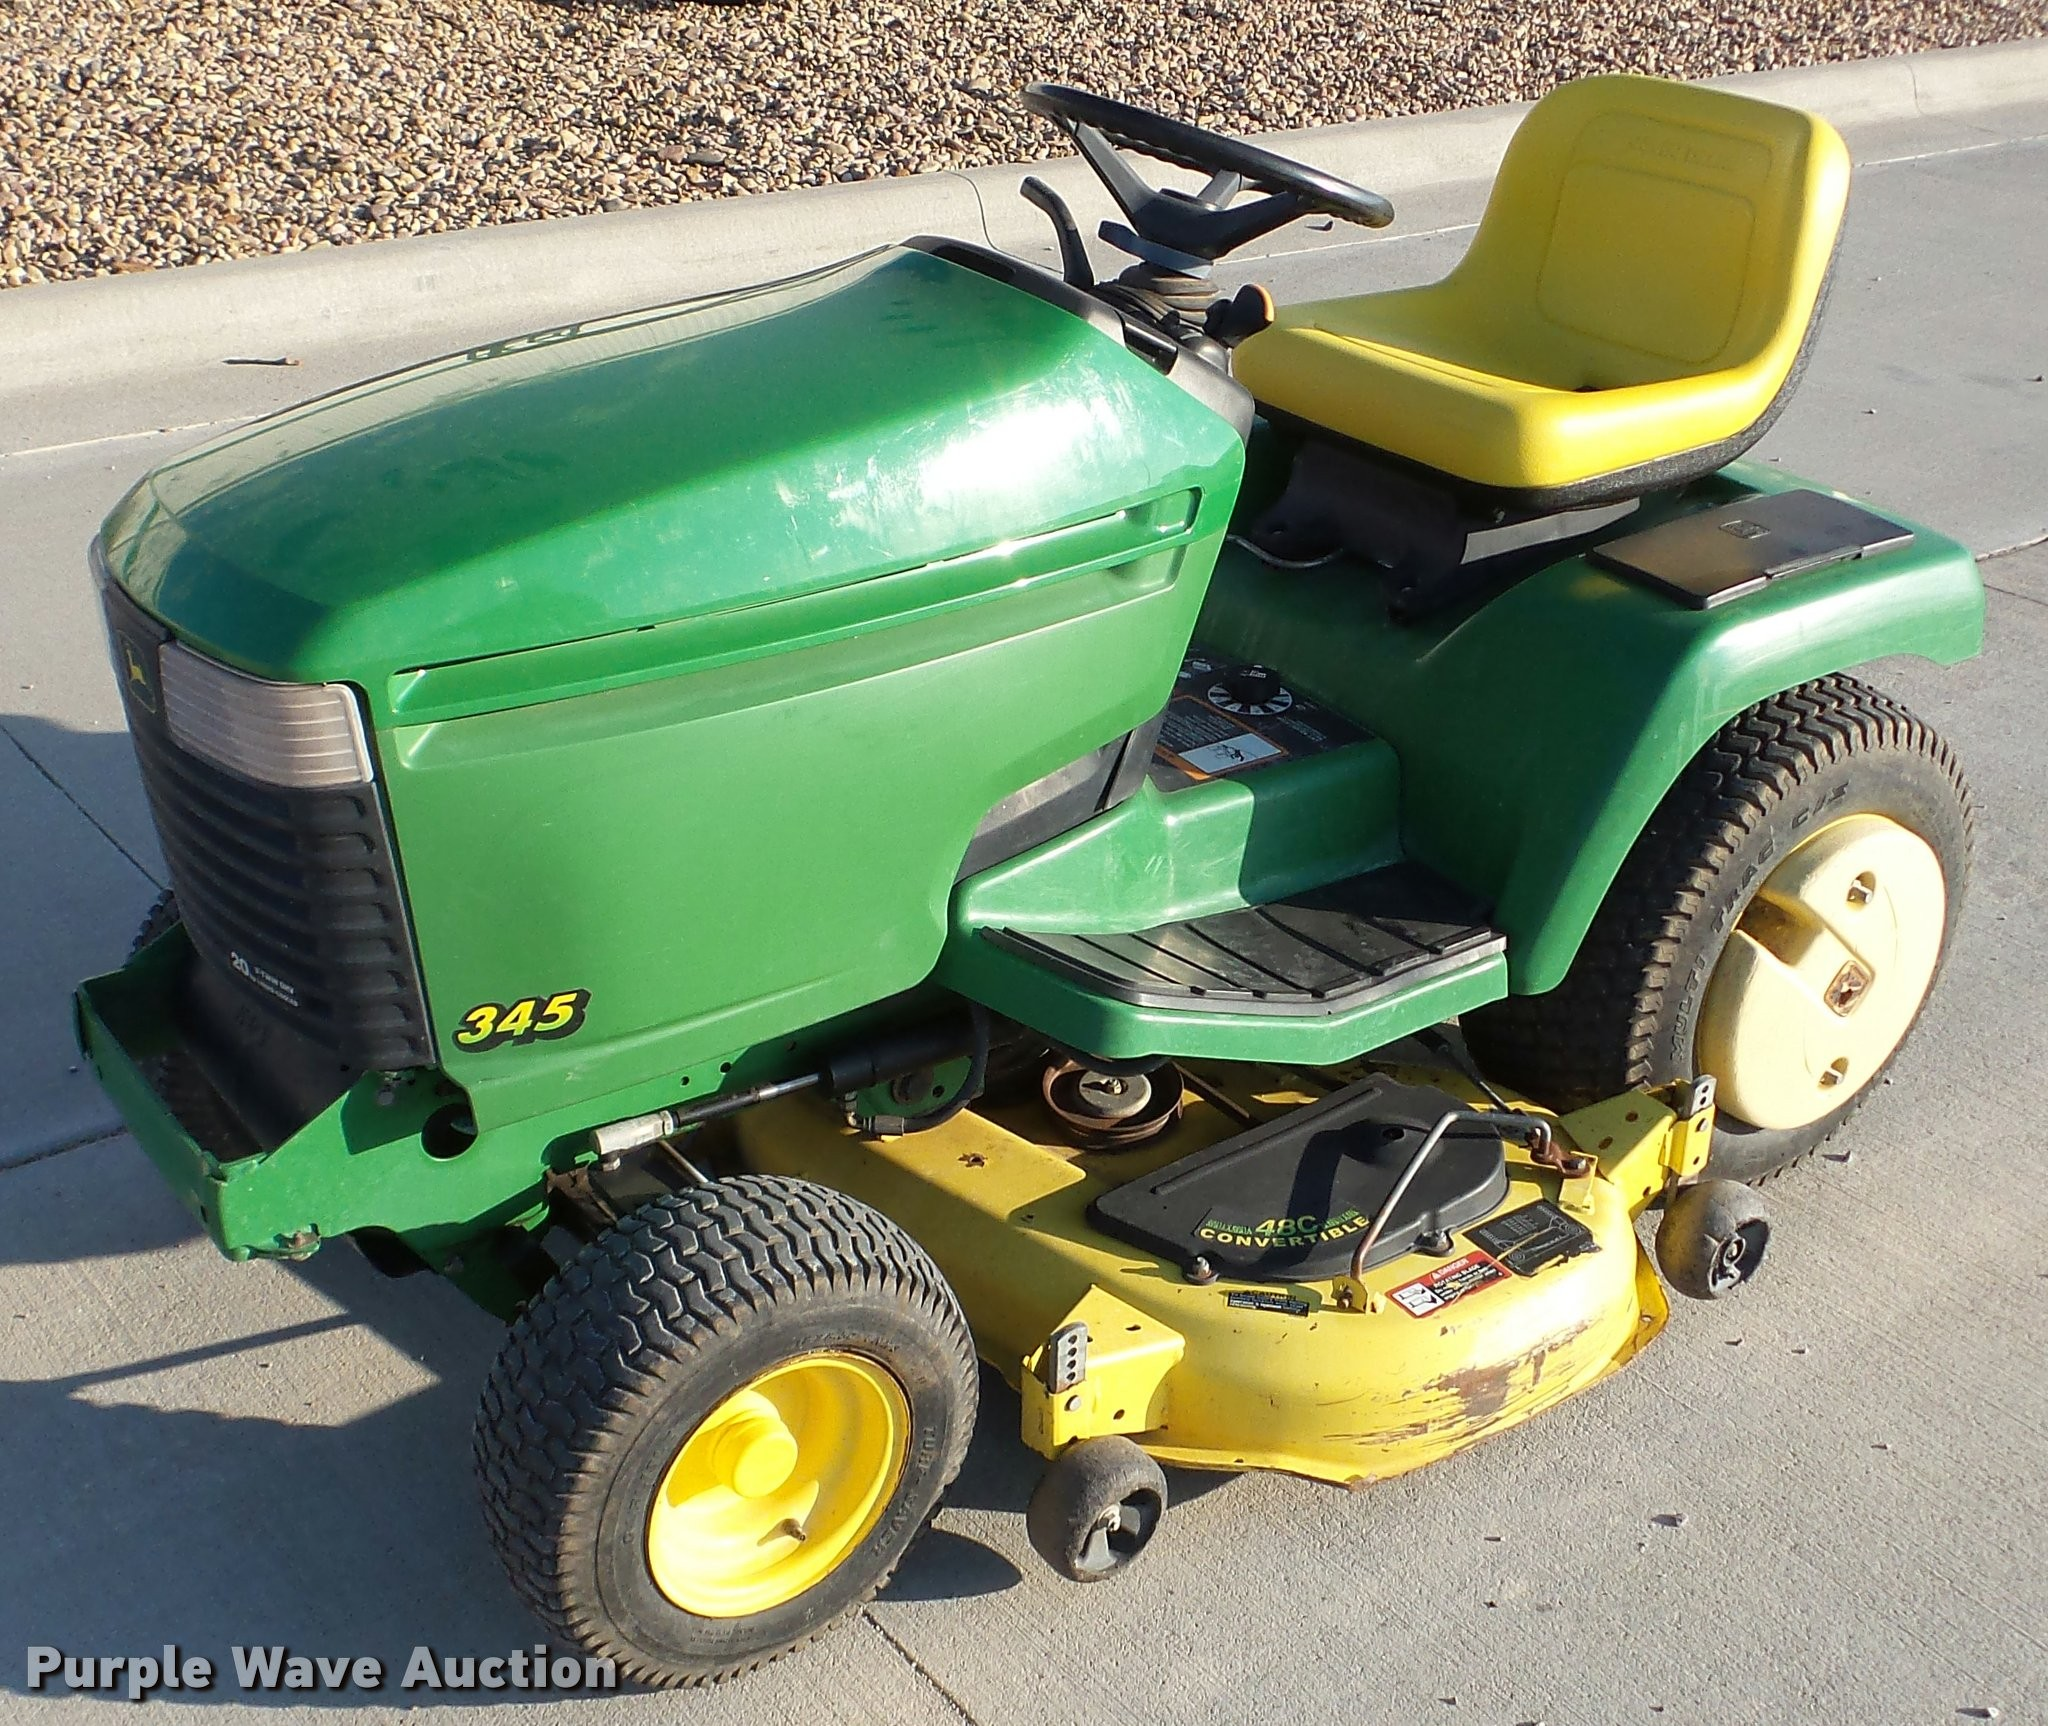 John Deere Modle 345 Electrical John Deere 345 Lawn Mower In Concordia Ks Of John Deere Modle 345 Electrical